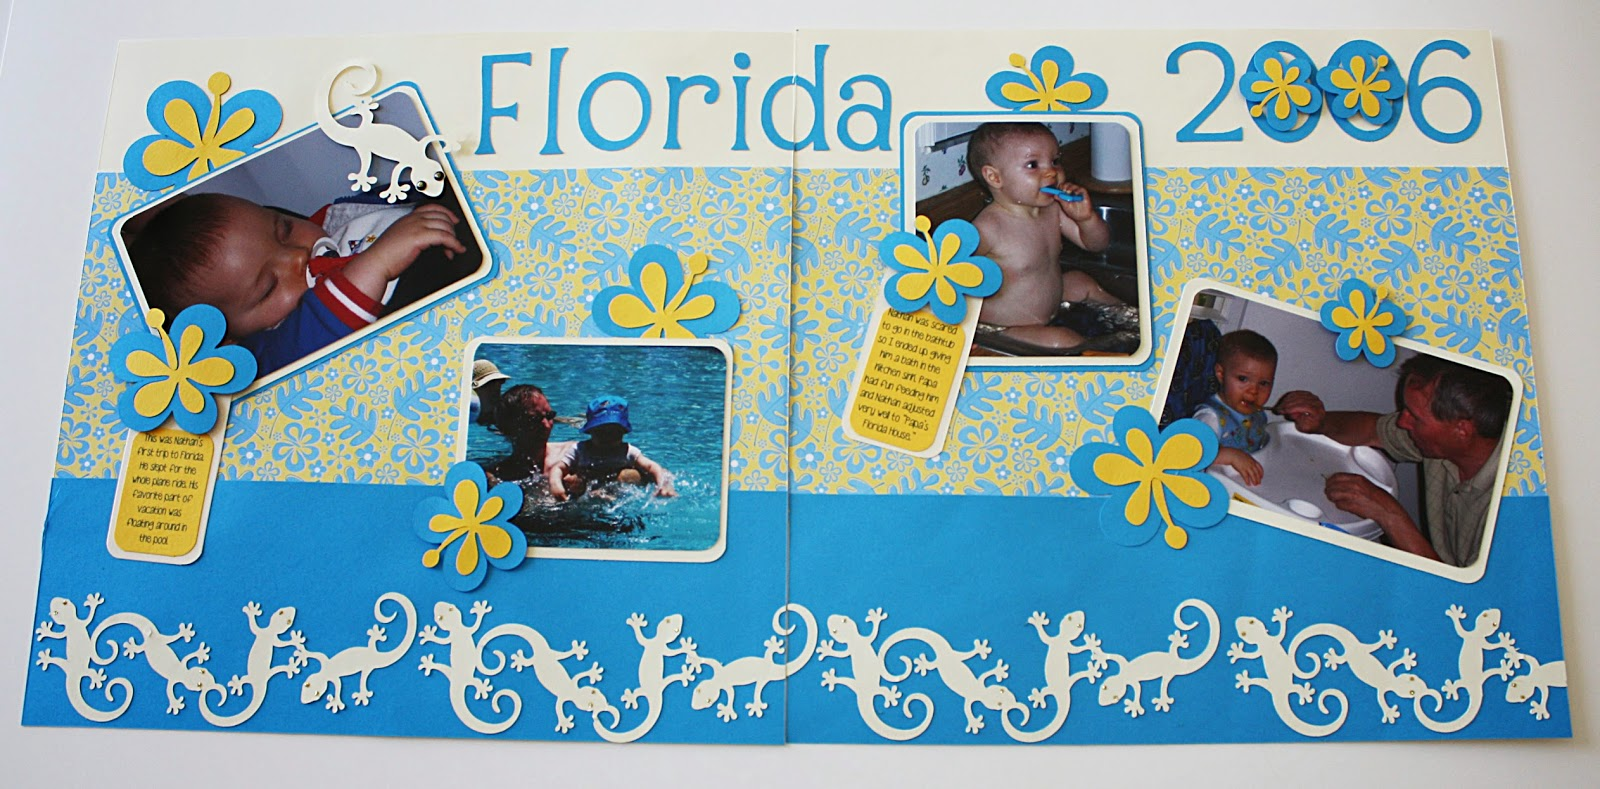 How to scrapbook good - I Then Did A Little Brightening Cropping And A Few Other Edits In Photoshop And Was Ready To Upload When I Went Into My Account At Scrapbook Com I Had To